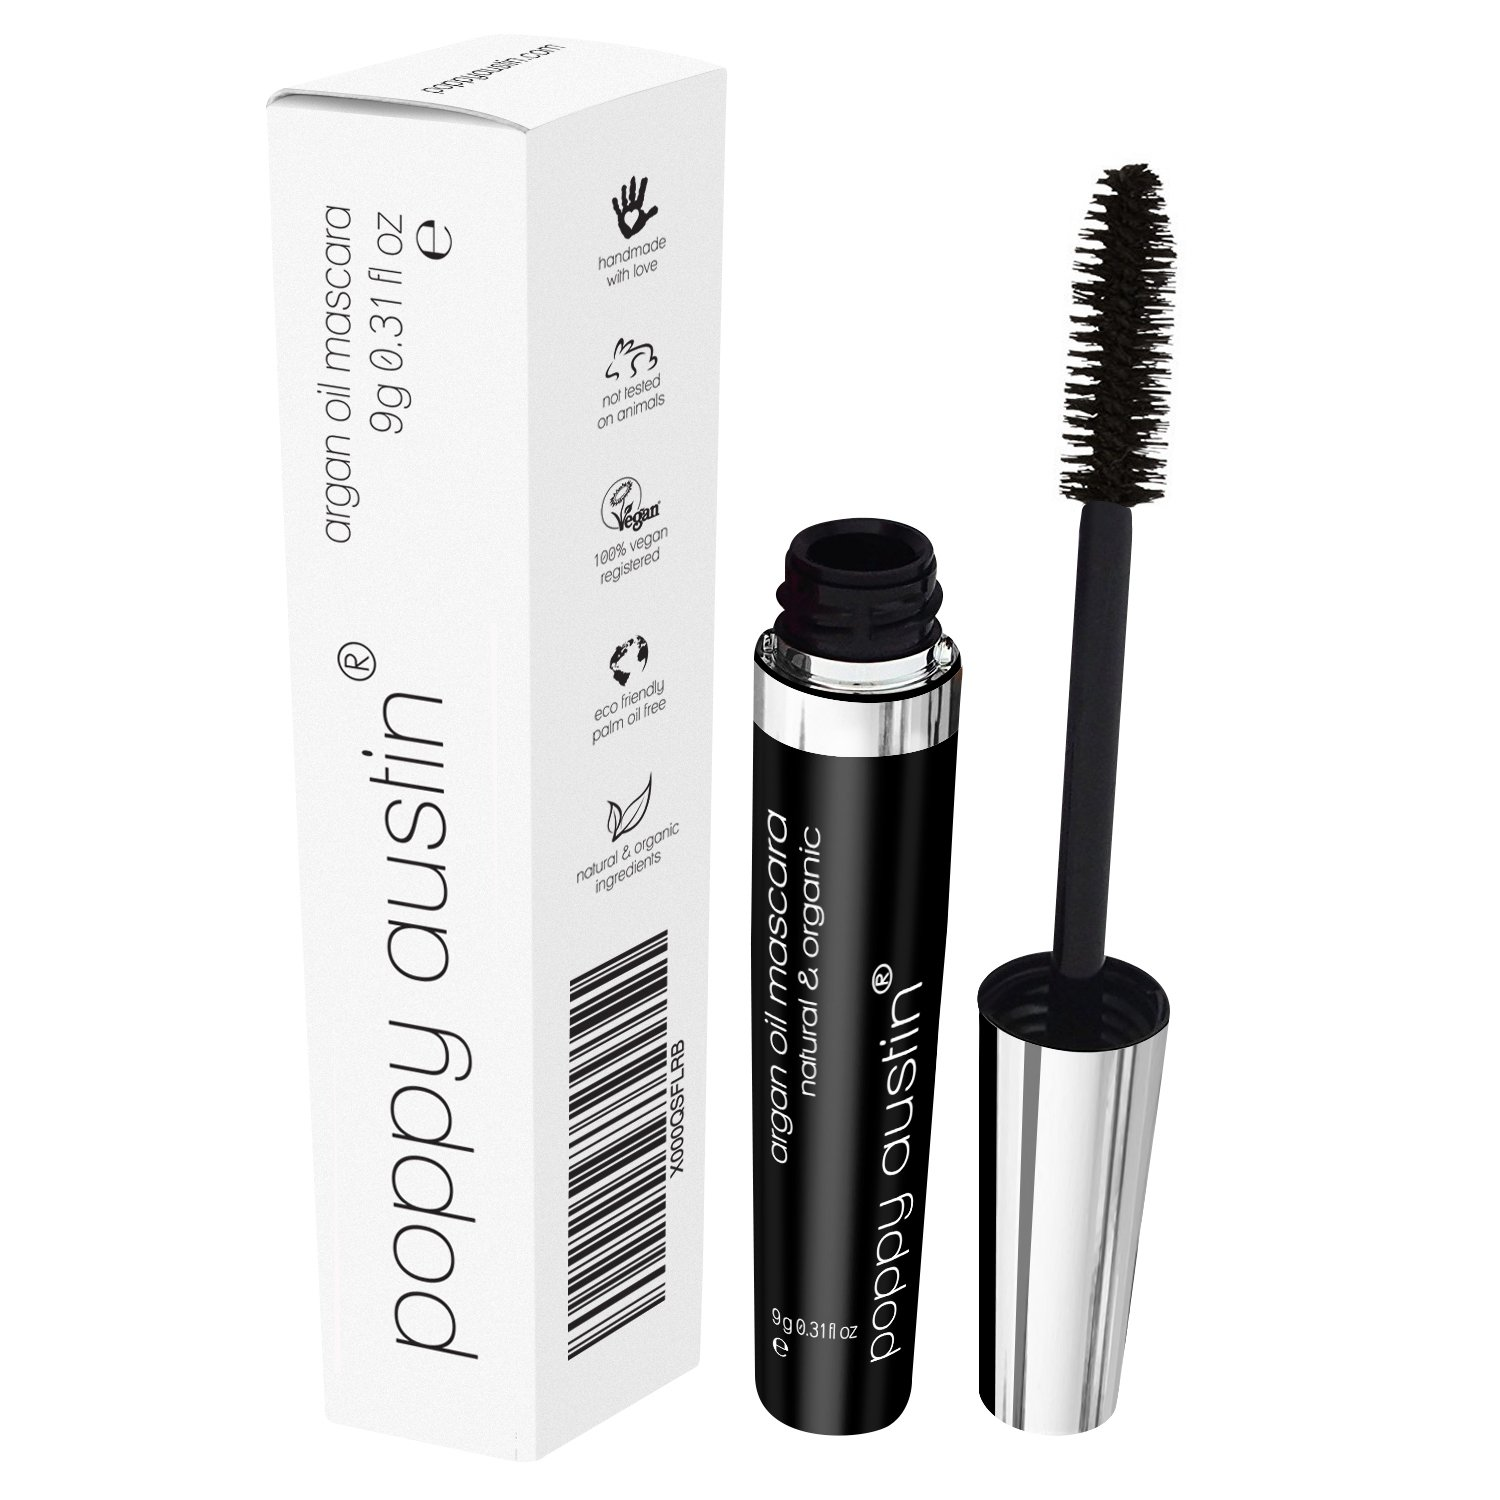 1ffe81d7805 FINEST Vegan & Organic Lengthening Mascara Black With Argan Oil -  Cruelty-Free, Best